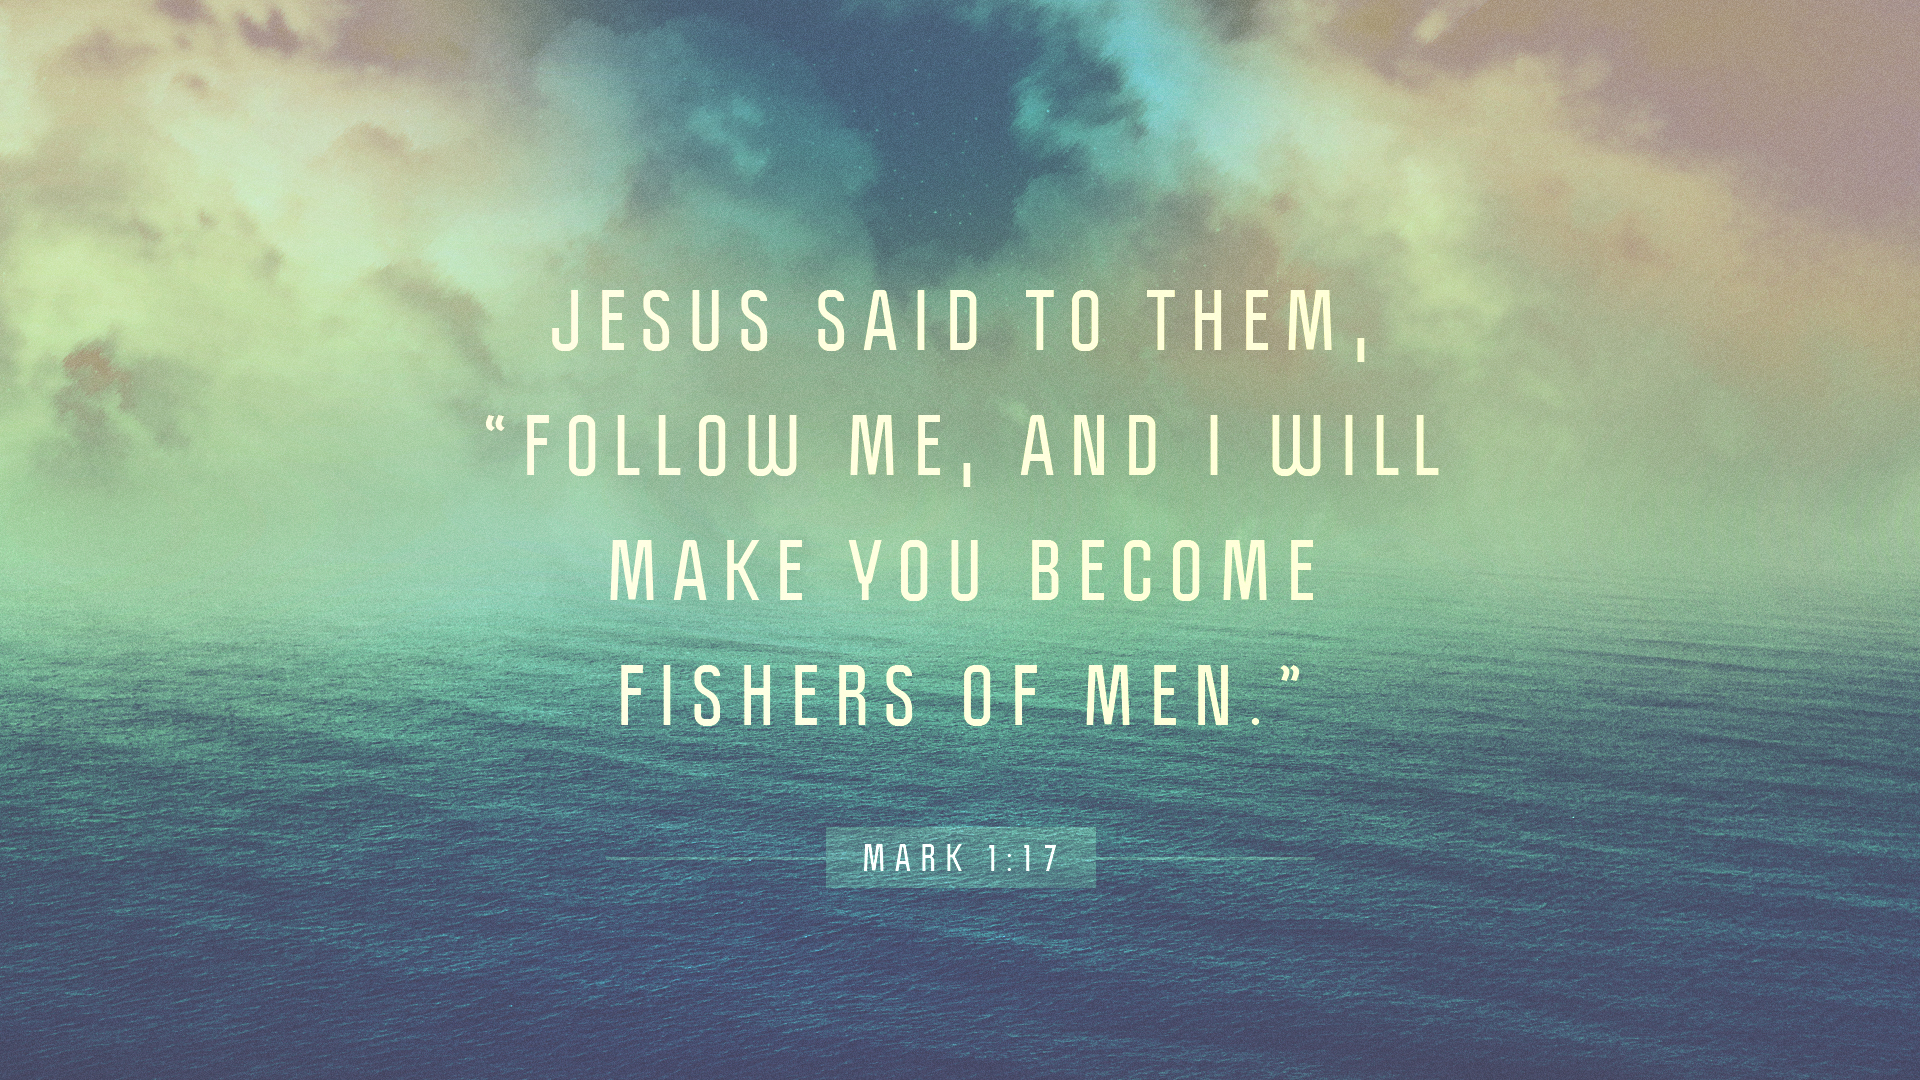 Love Disappointment Quotes Wallpapers Quotes About Follow Jesus 113 Quotes